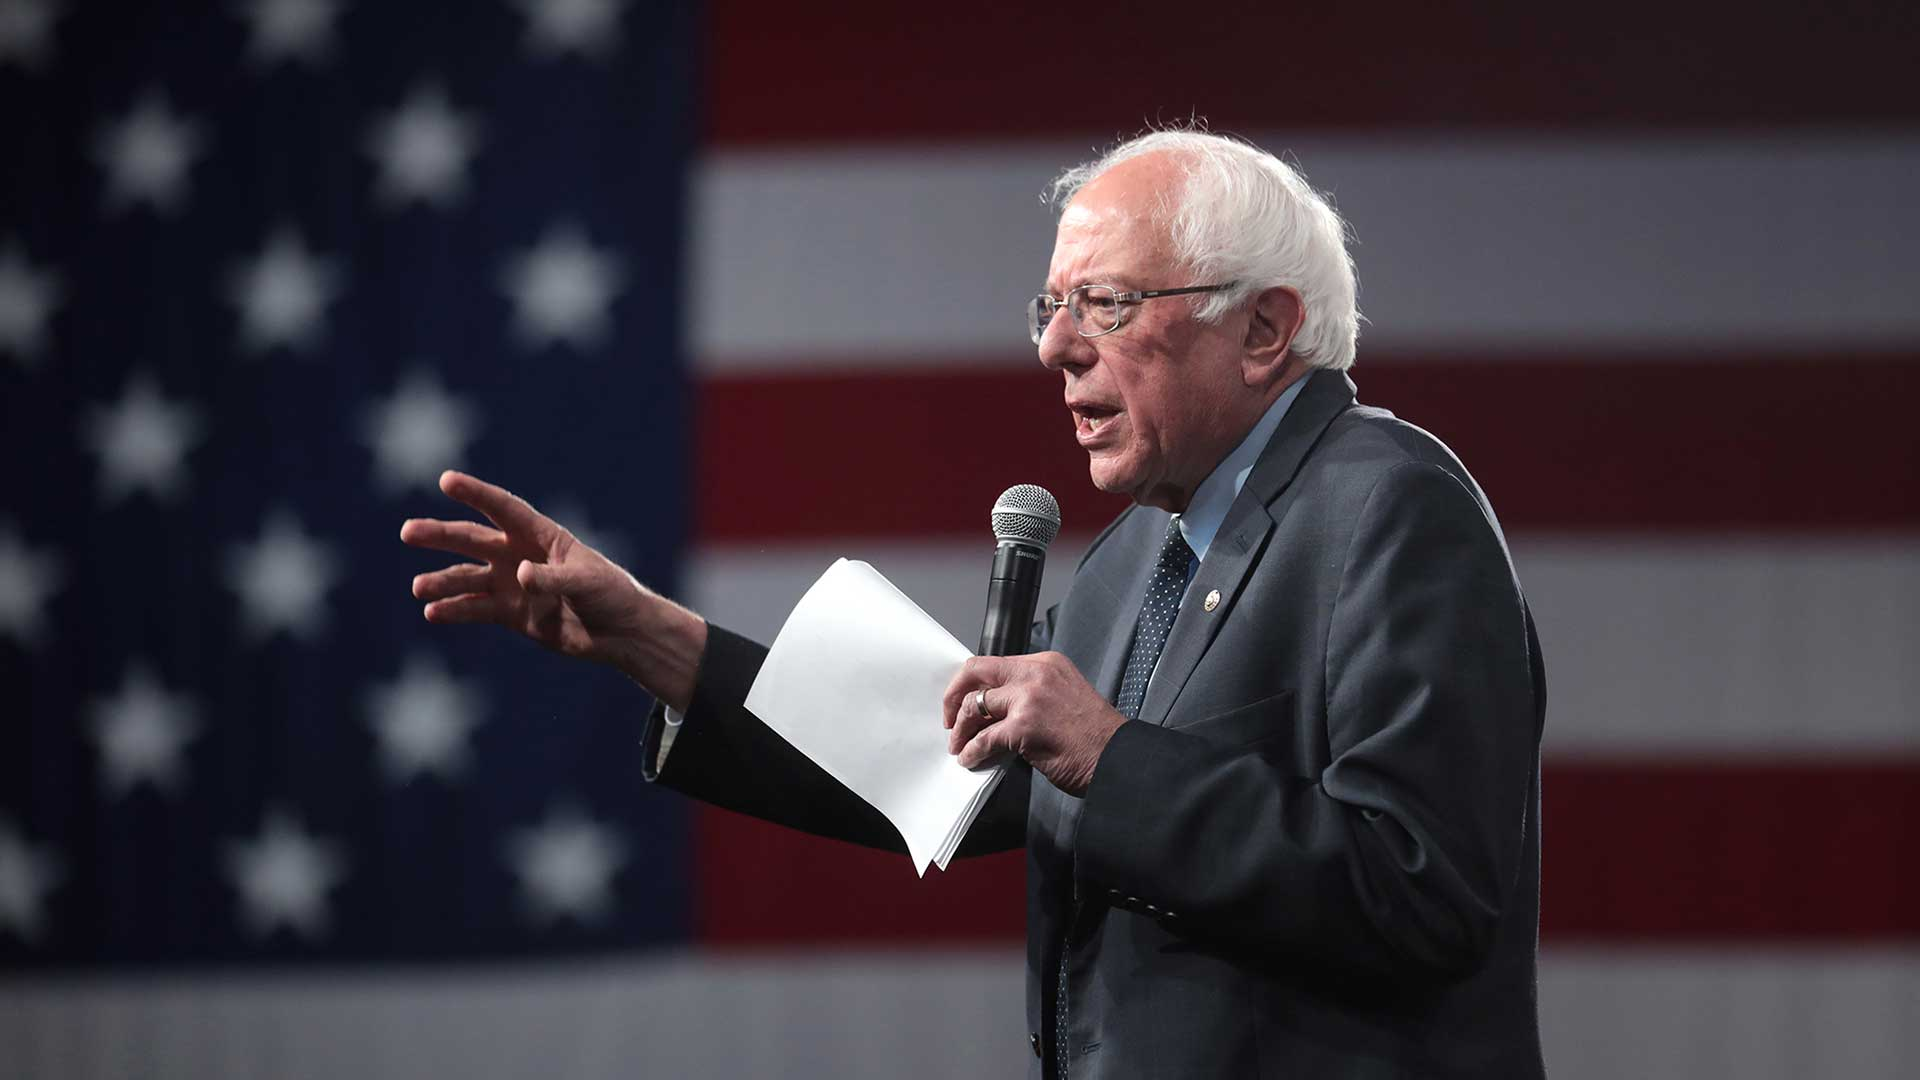 Vermont Sen. Bernie Sanders had a strong lead in campaign donations from Arizona donors among the Democratic field of presidential hopefuls, raising $768,054 as of Jan. 31, according to Federal Election Commission reports.